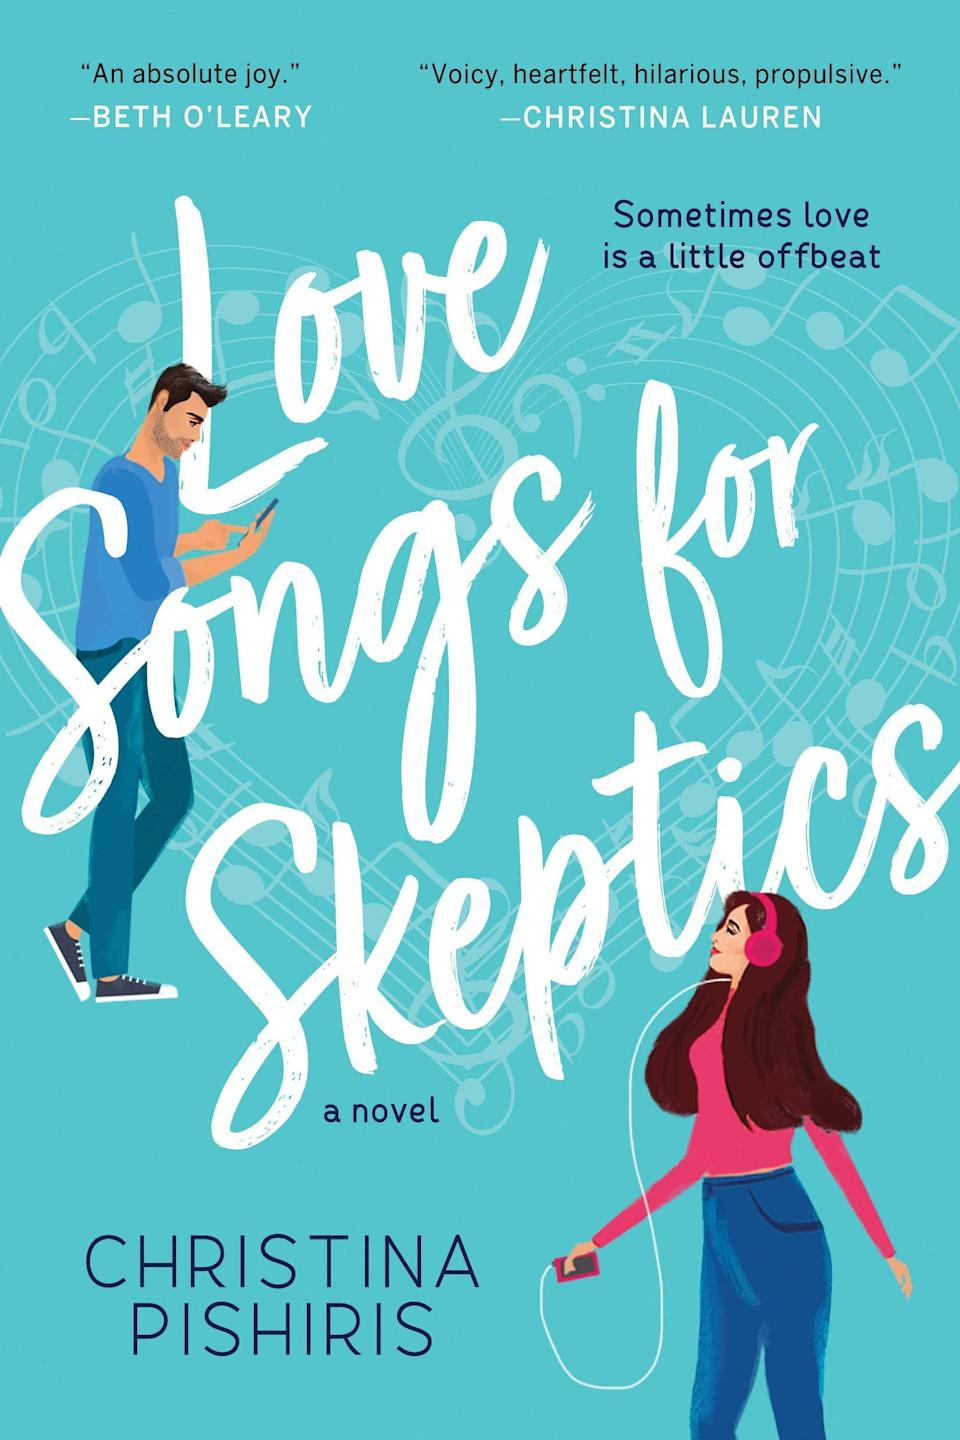 <p><span><strong>Love Songs for Skeptics</strong></span> by Christina Pishiris is a charming story of first loves and unexpected romance. Music magazine editor Zoë Frixos loves a good love song, but her own romantic fiascos have left her doubtful about the prospect of falling in love herself. But when an annoying publicist and her best friend/crush both enter her orbit at the same time, Zoe may have to reevaluate her stance on relationships. </p> <p><em>Out Jan. 5</em></p>